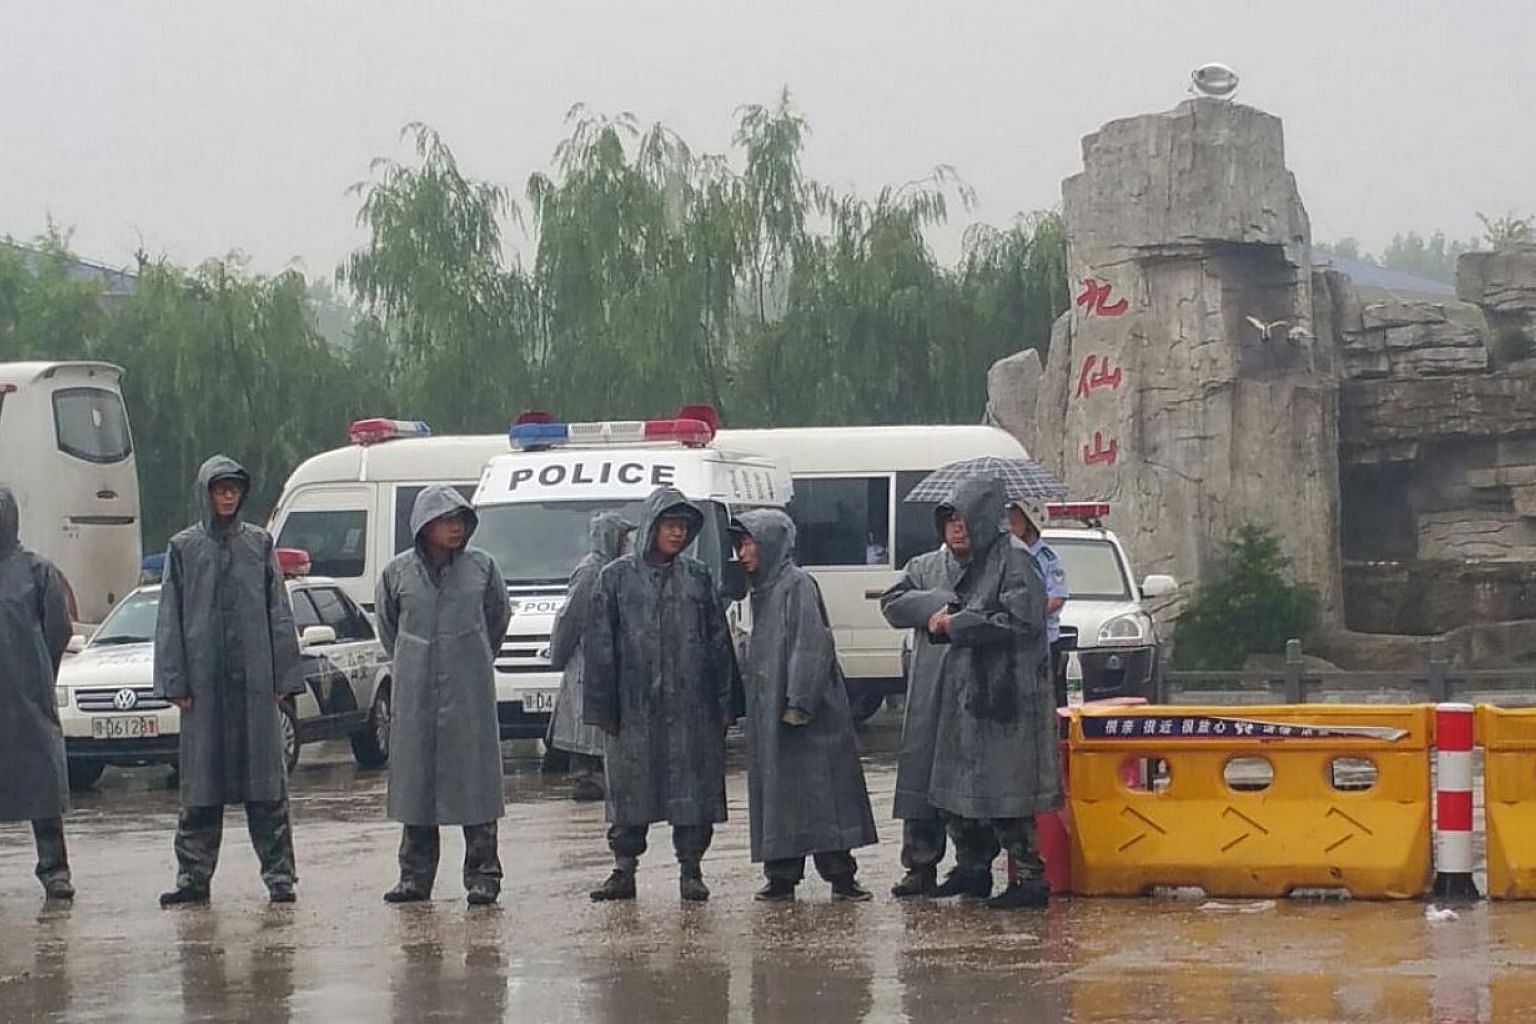 A police cordon outside the Rongcheng crematorium in Jianli county, Hubei province. Members of the media were barred from entering the premises. -- ST PHOTO: KOR KIAN BENG